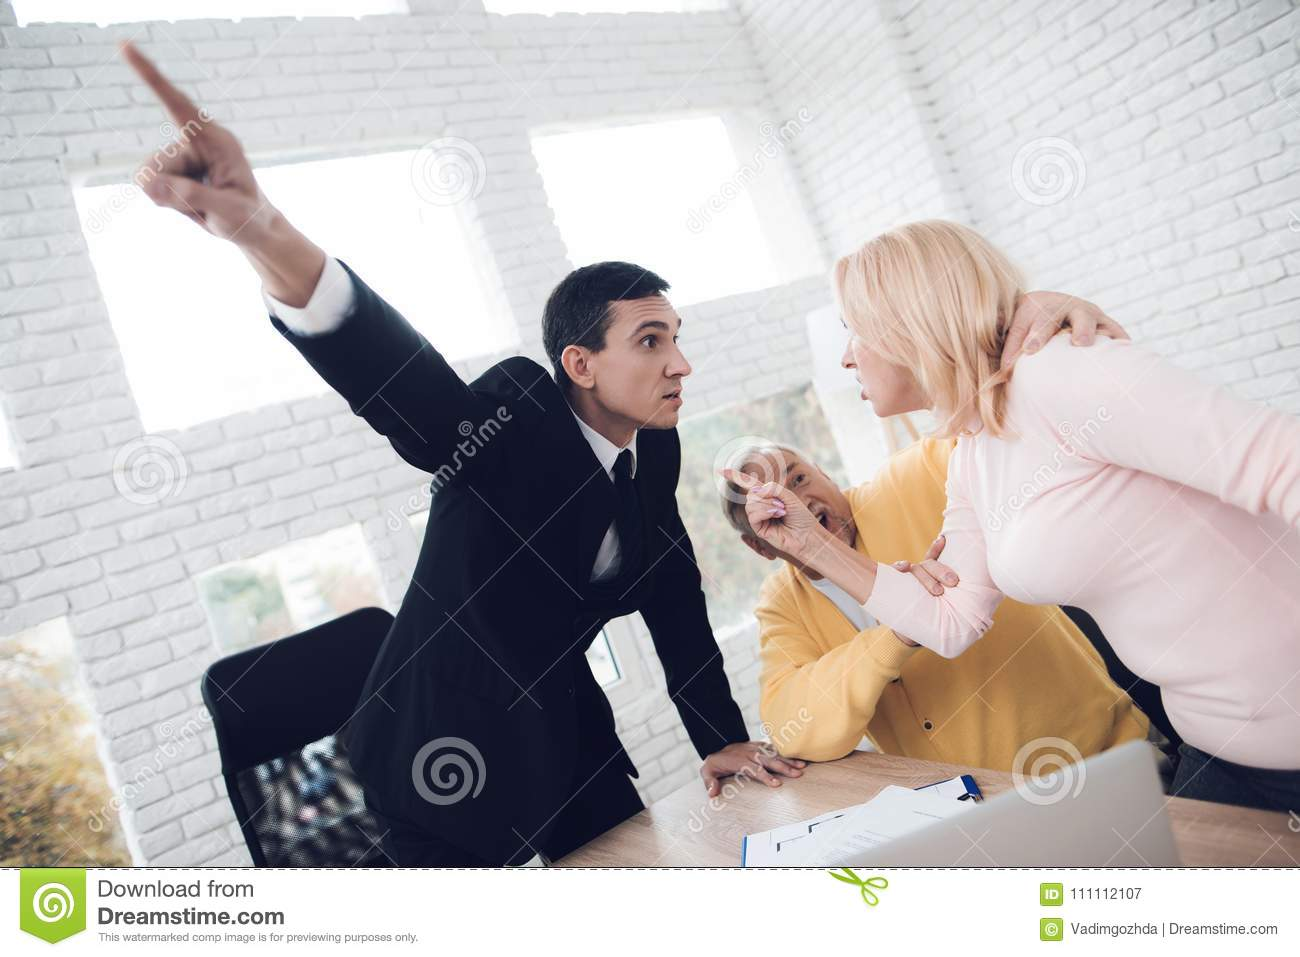 A couple of old people came to a consultation with a realtor. They argue with a realtor, and the realtor drives them out